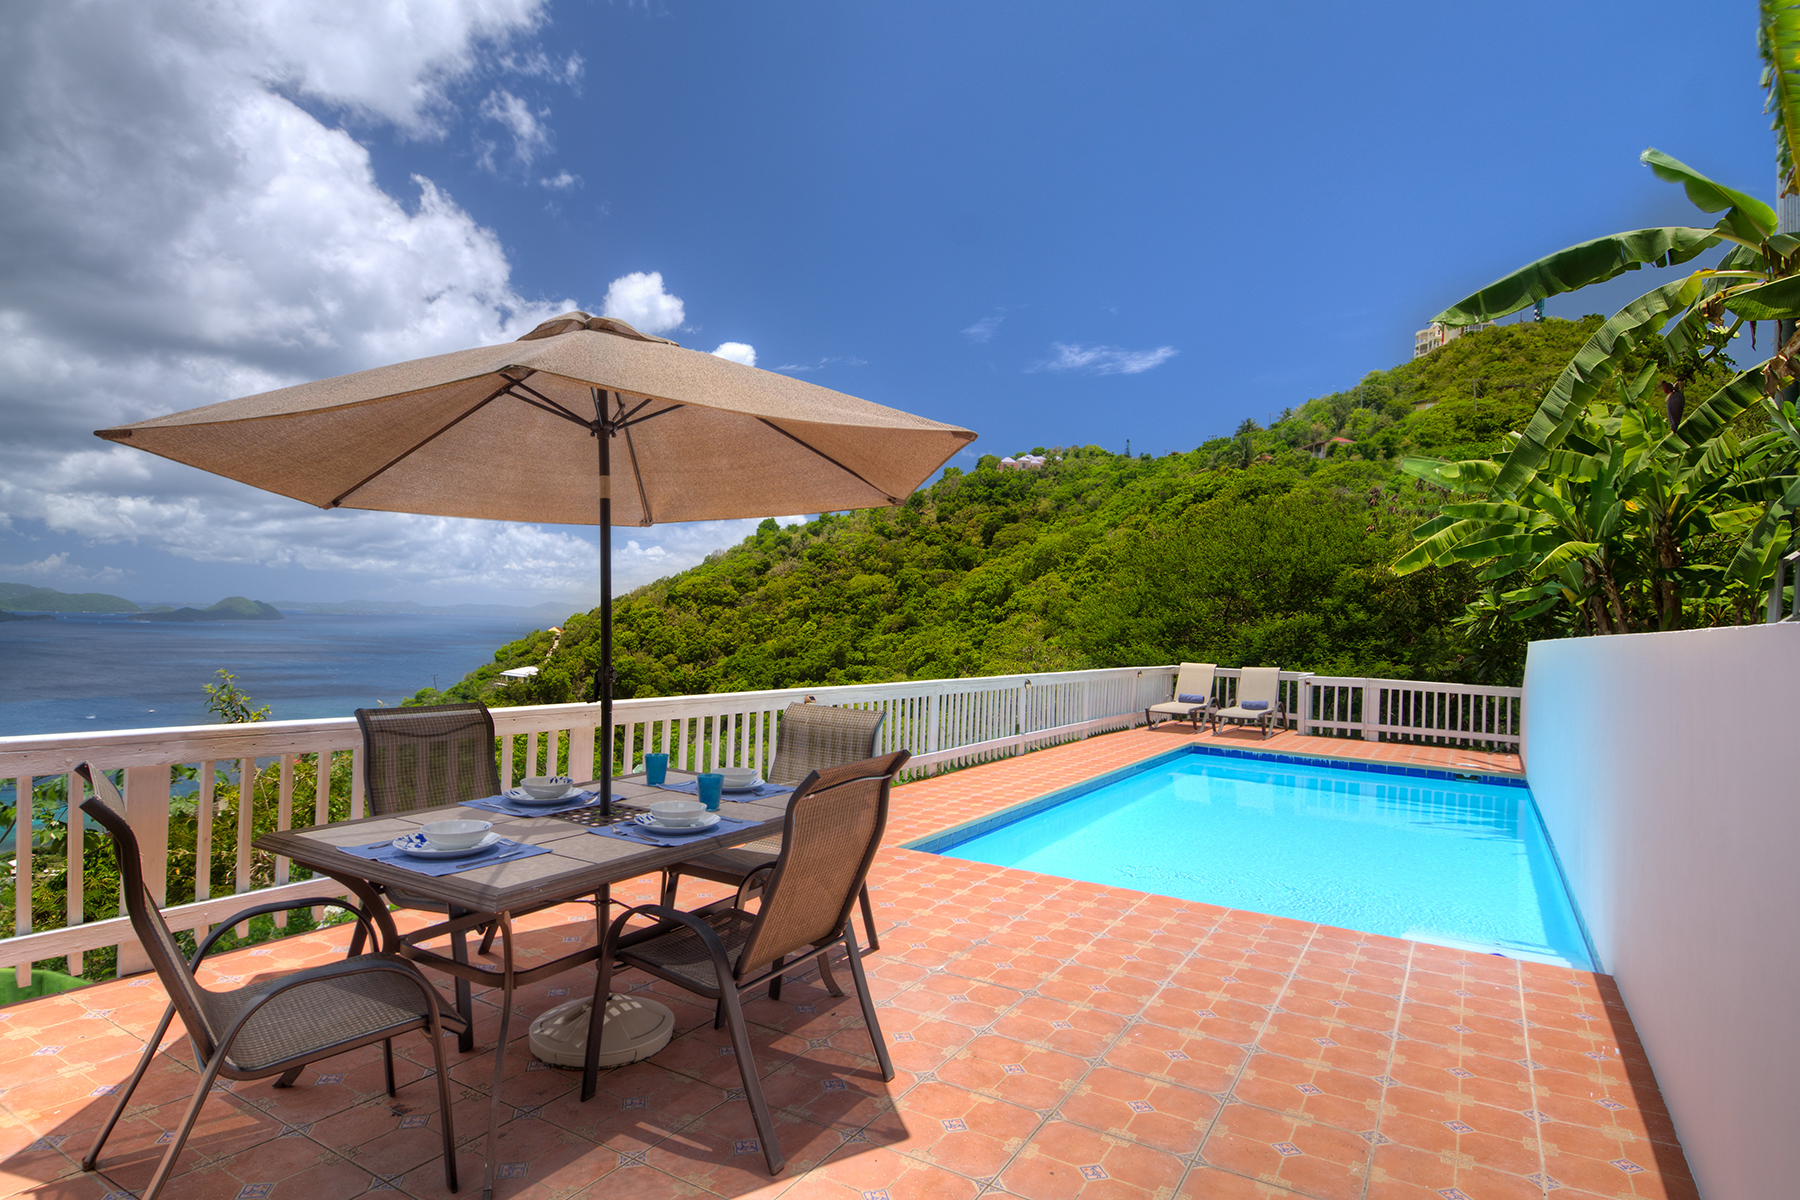 Additional photo for property listing at Makere House 蔗园湾, 托尔托拉 英属维尔京群岛